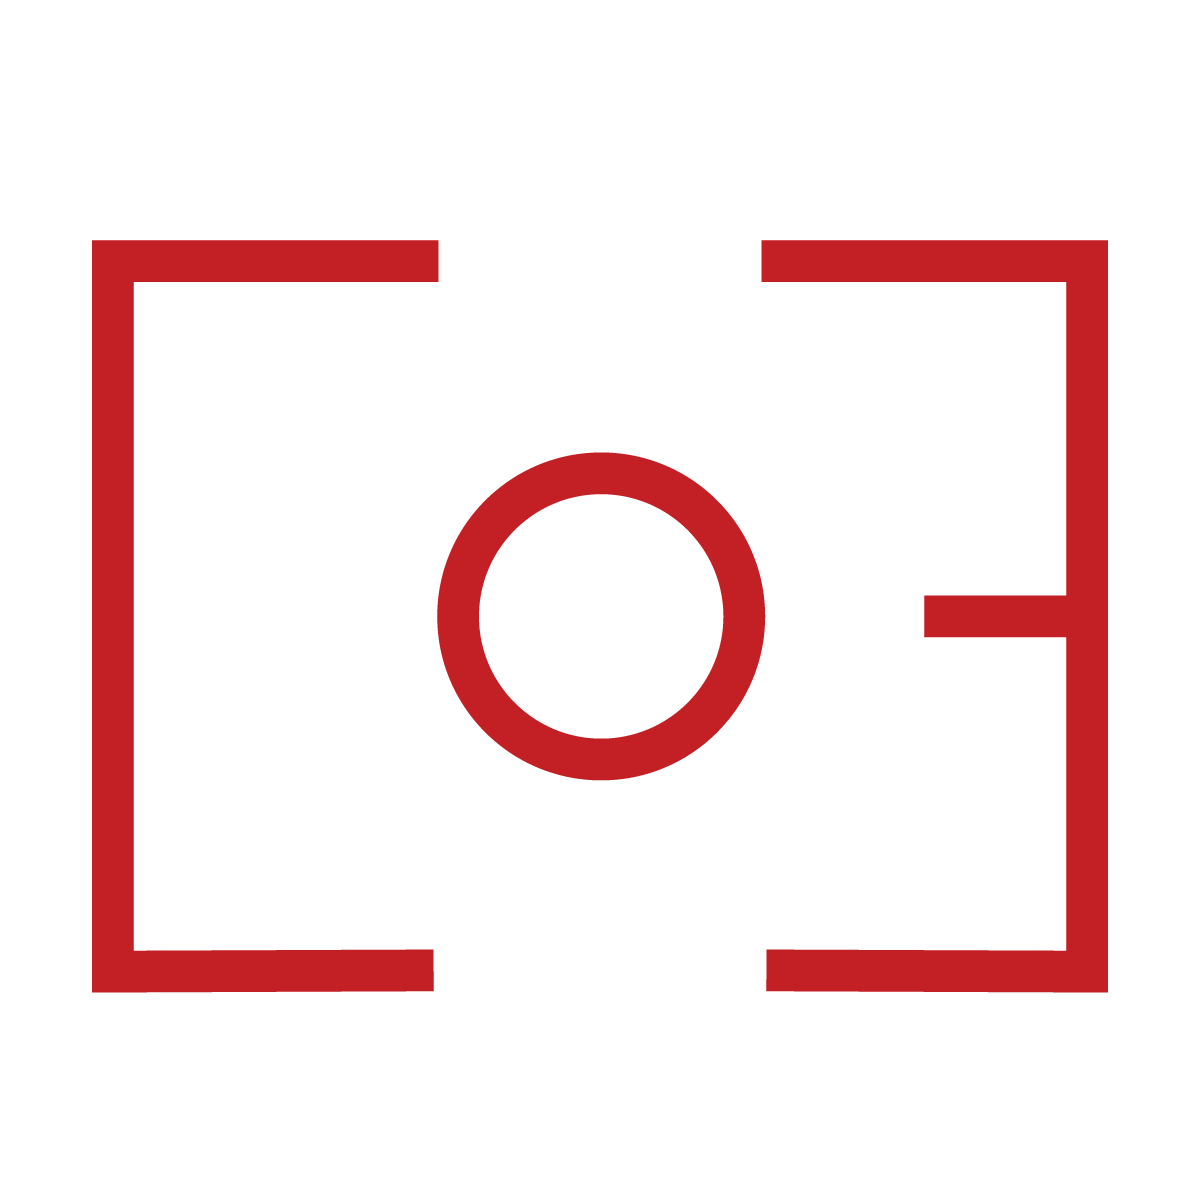 CEP.small.logo.red.png